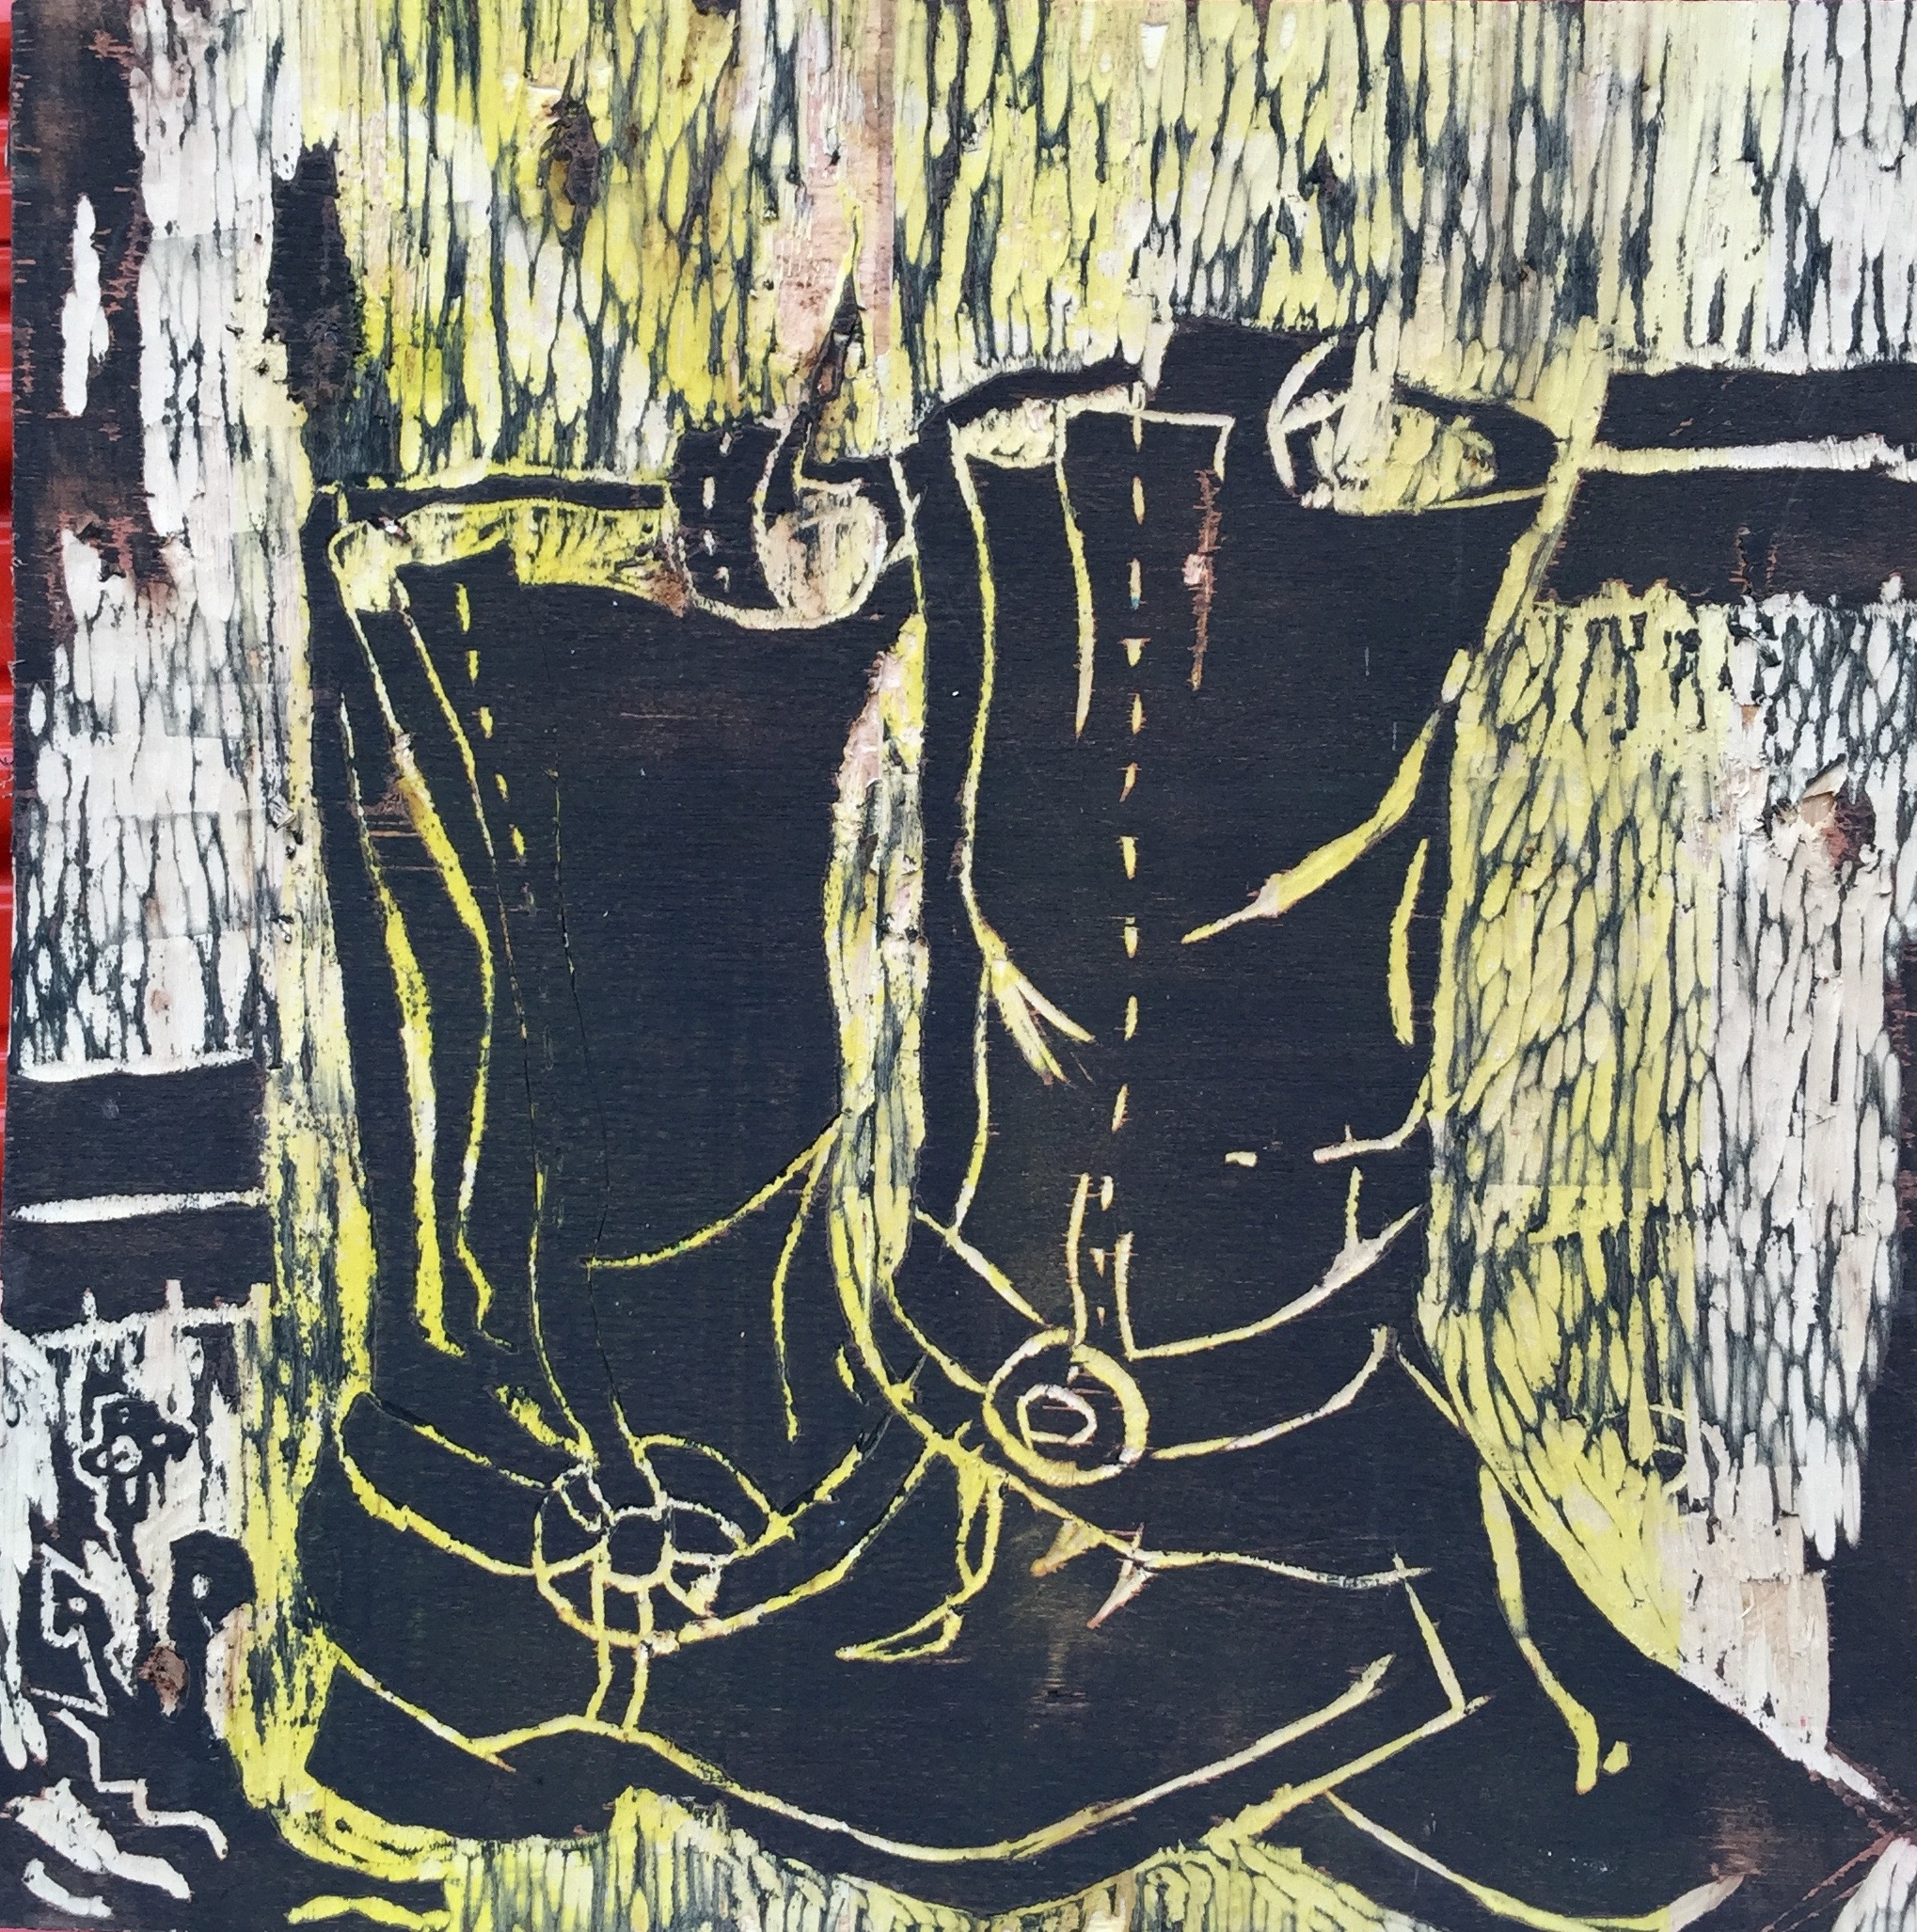 BOOTS, 2015